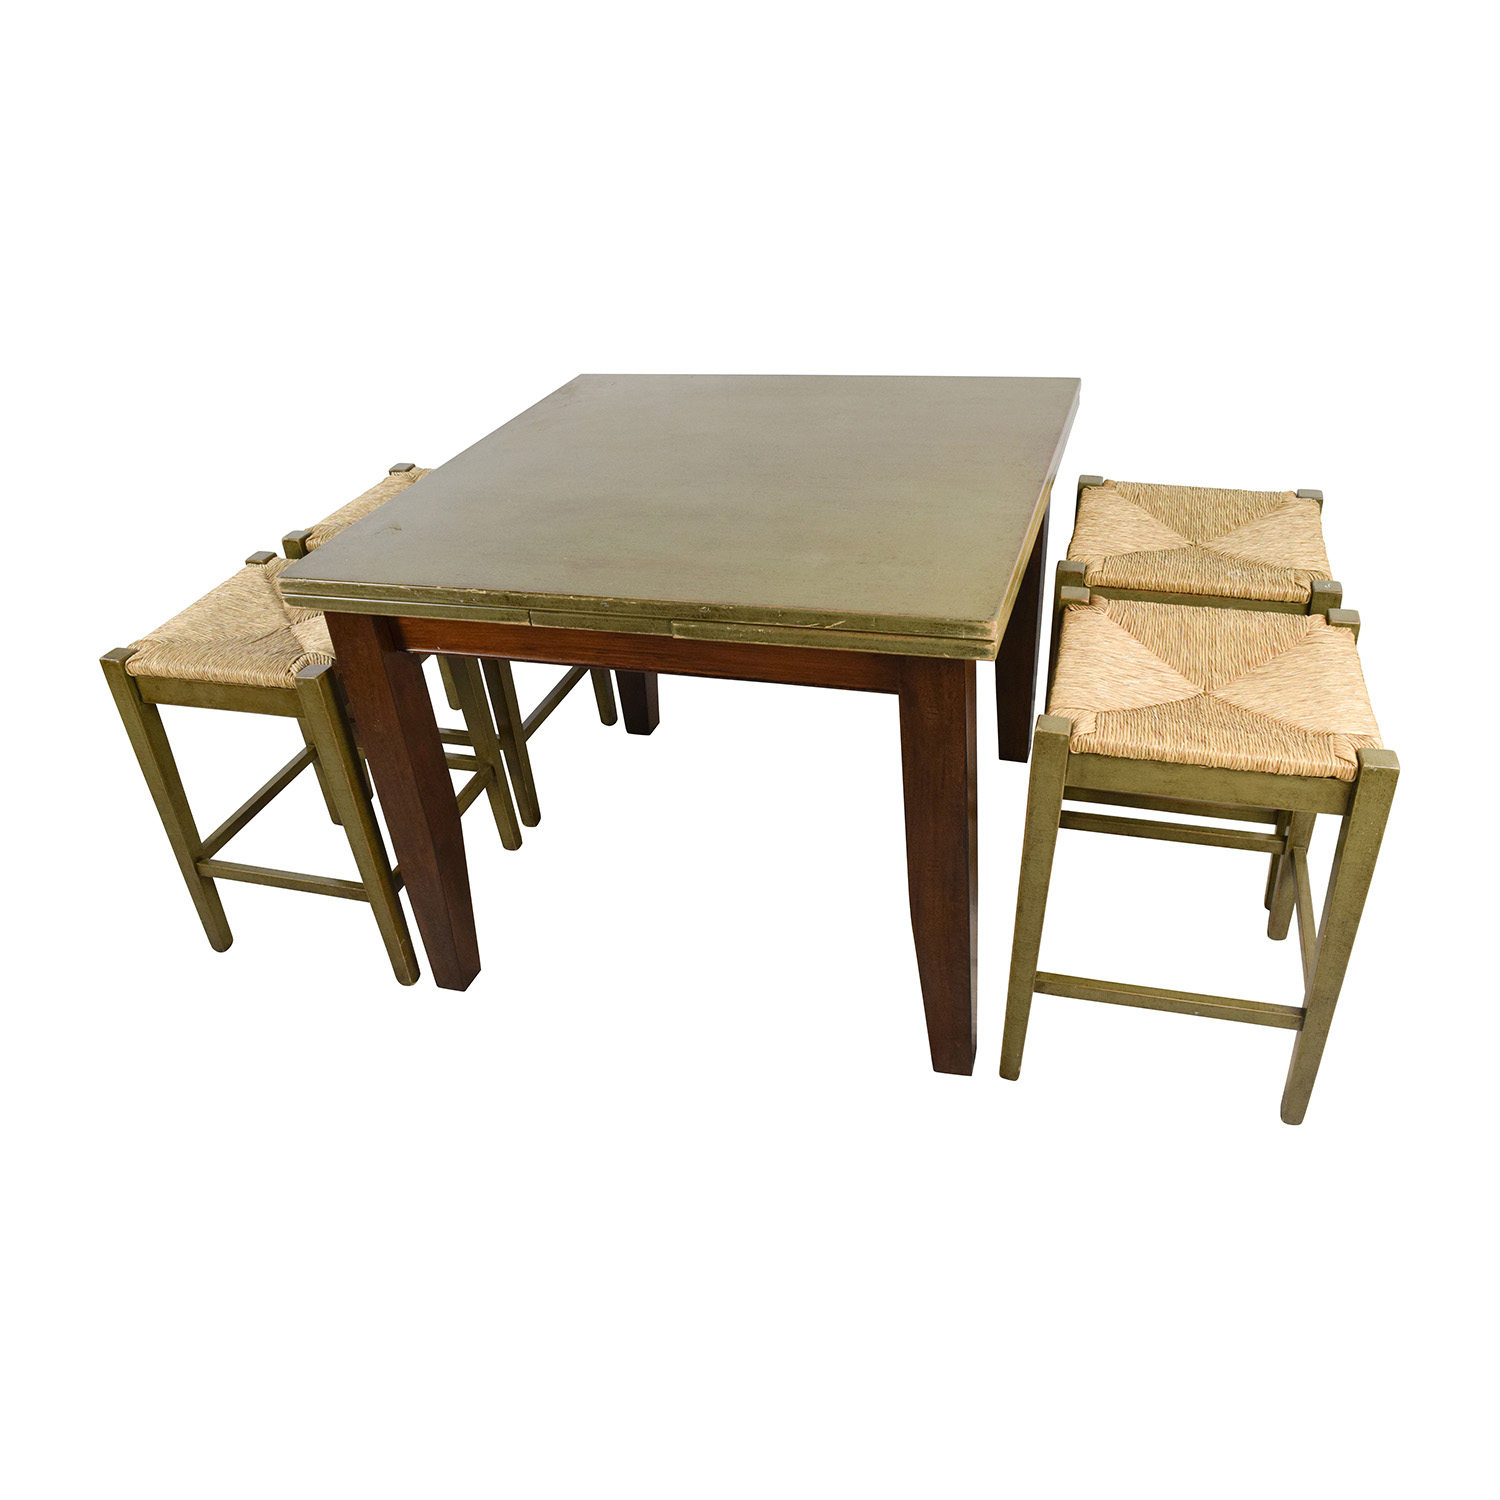 shop Rustic Extendable Table and Four Wicker Stools Unkown